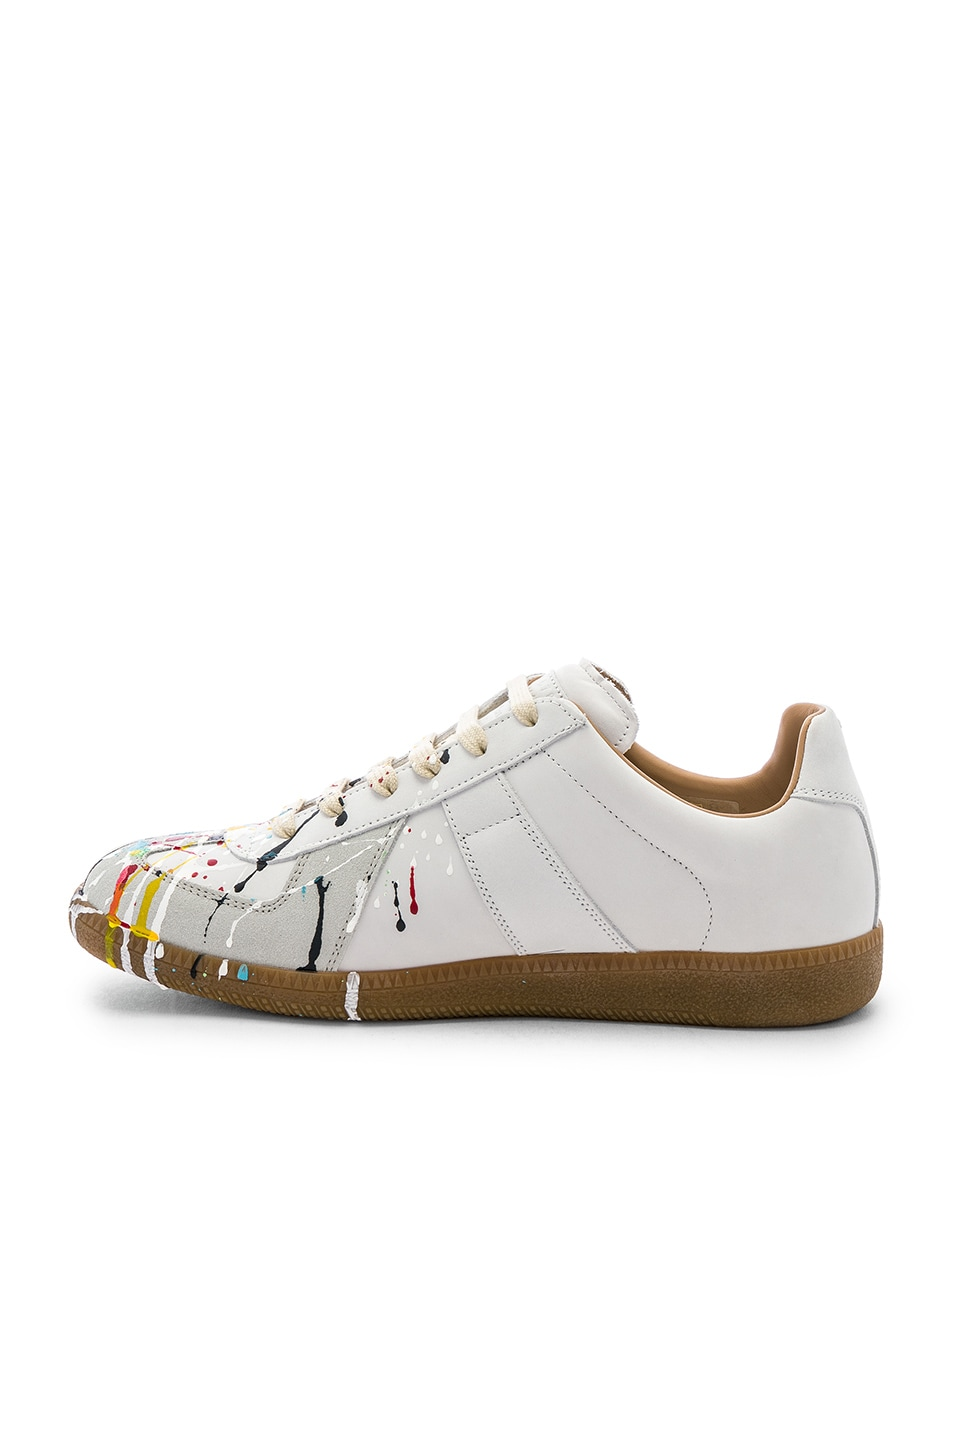 Image 5 of Maison Margiela Replica Low Top Painter in Off-White